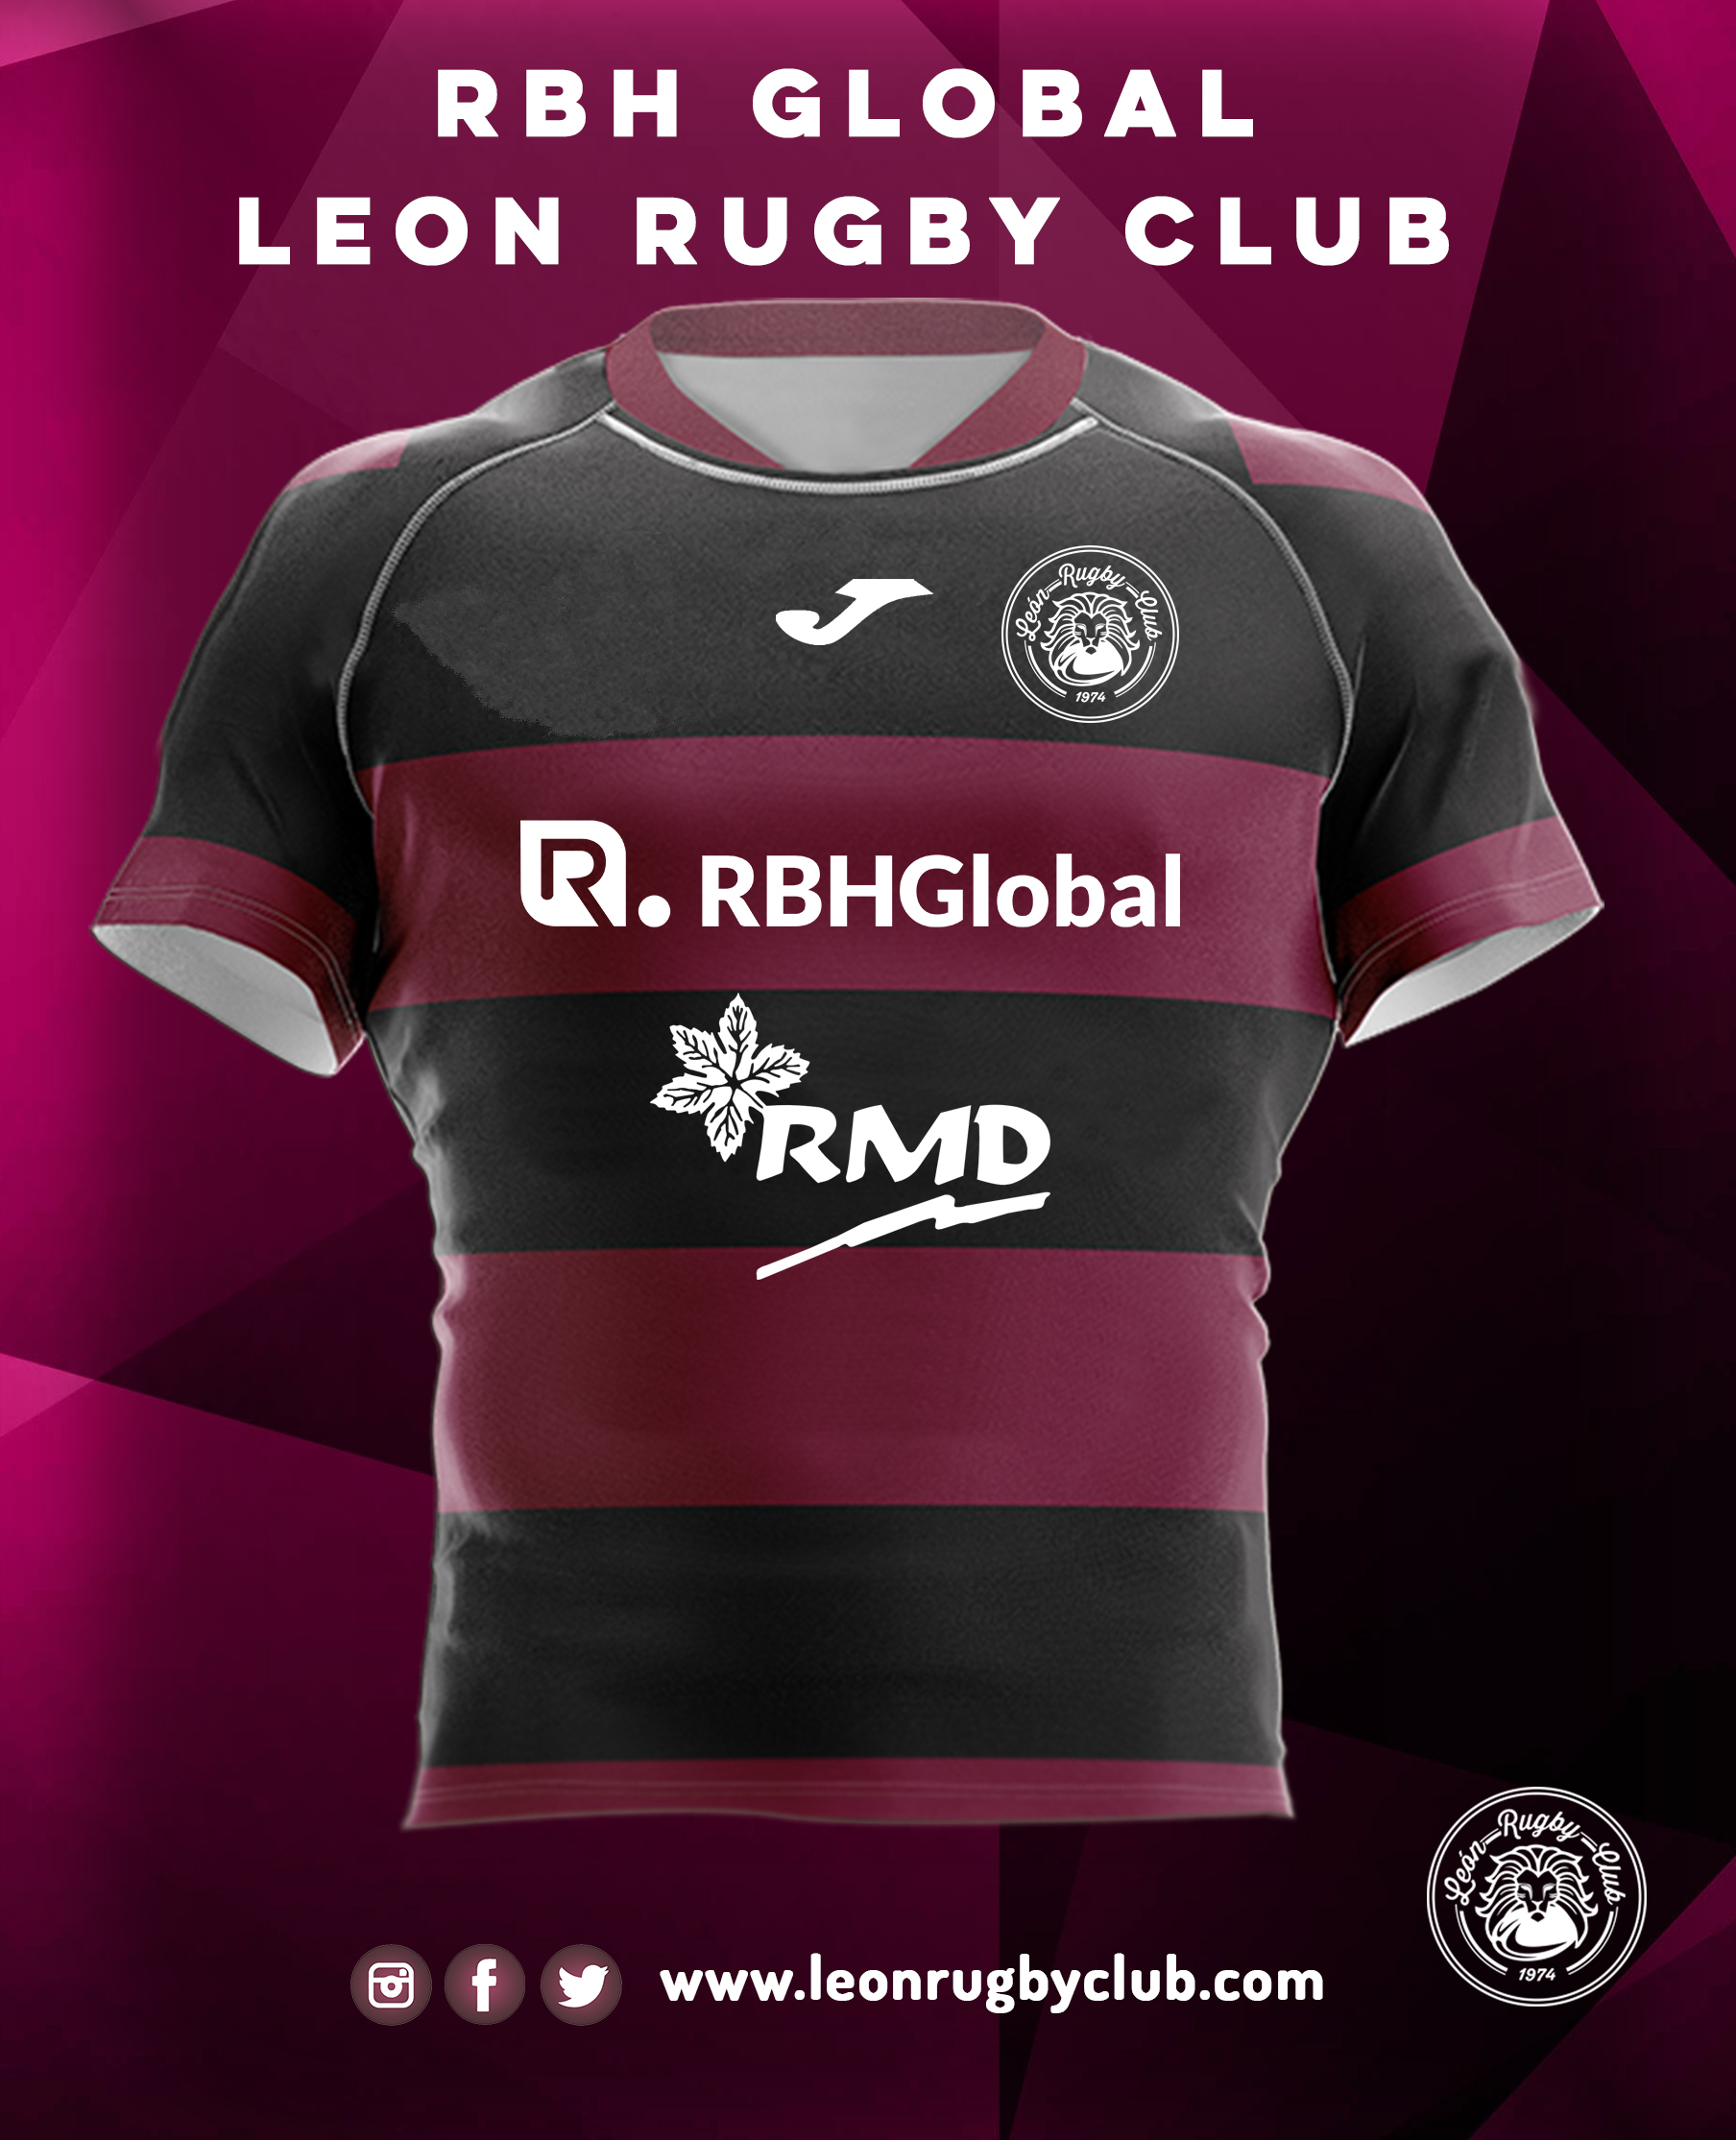 Camiseta de rugby reversible RBH León Rugby Club 19-20